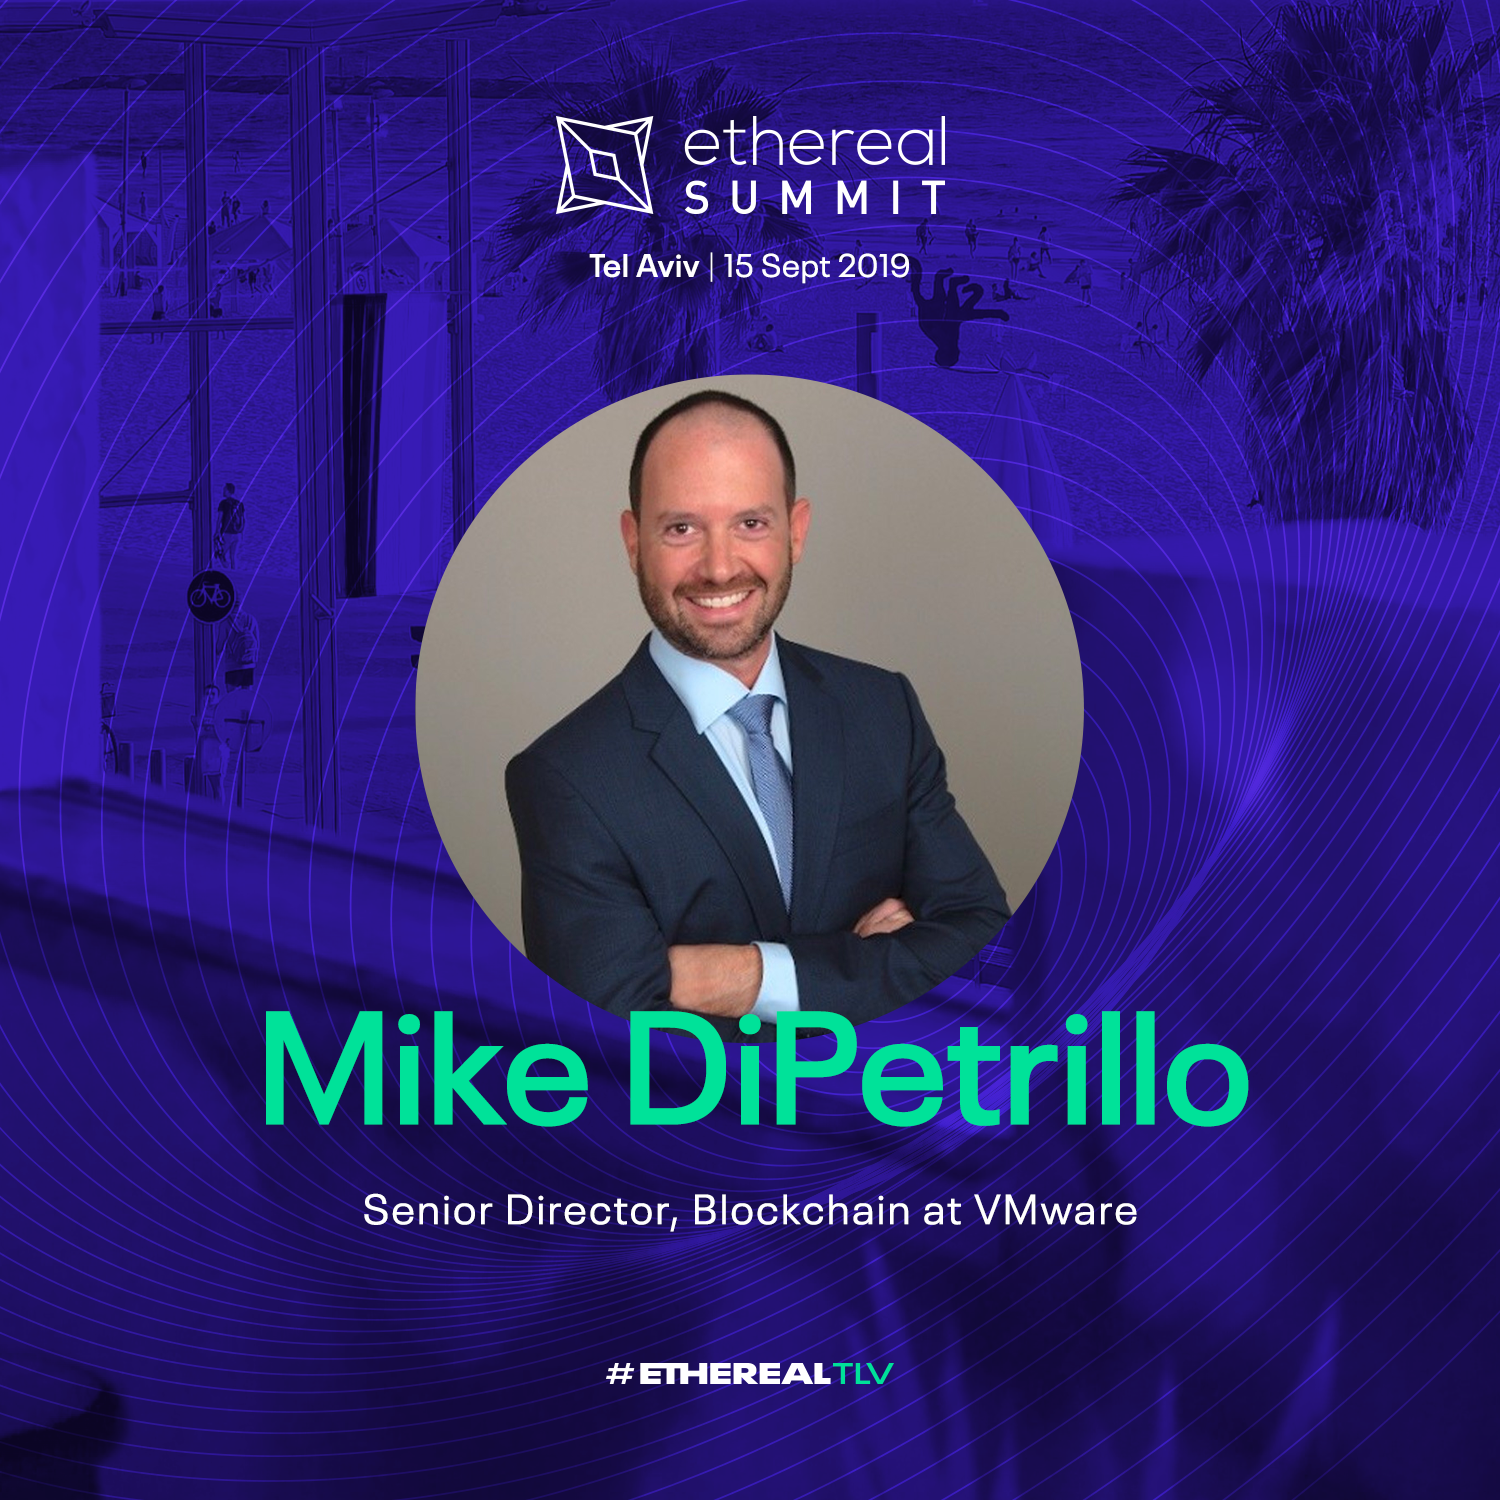 ethereal-tlv-2019-speaker-cards-square-mike-dipetrillo.png